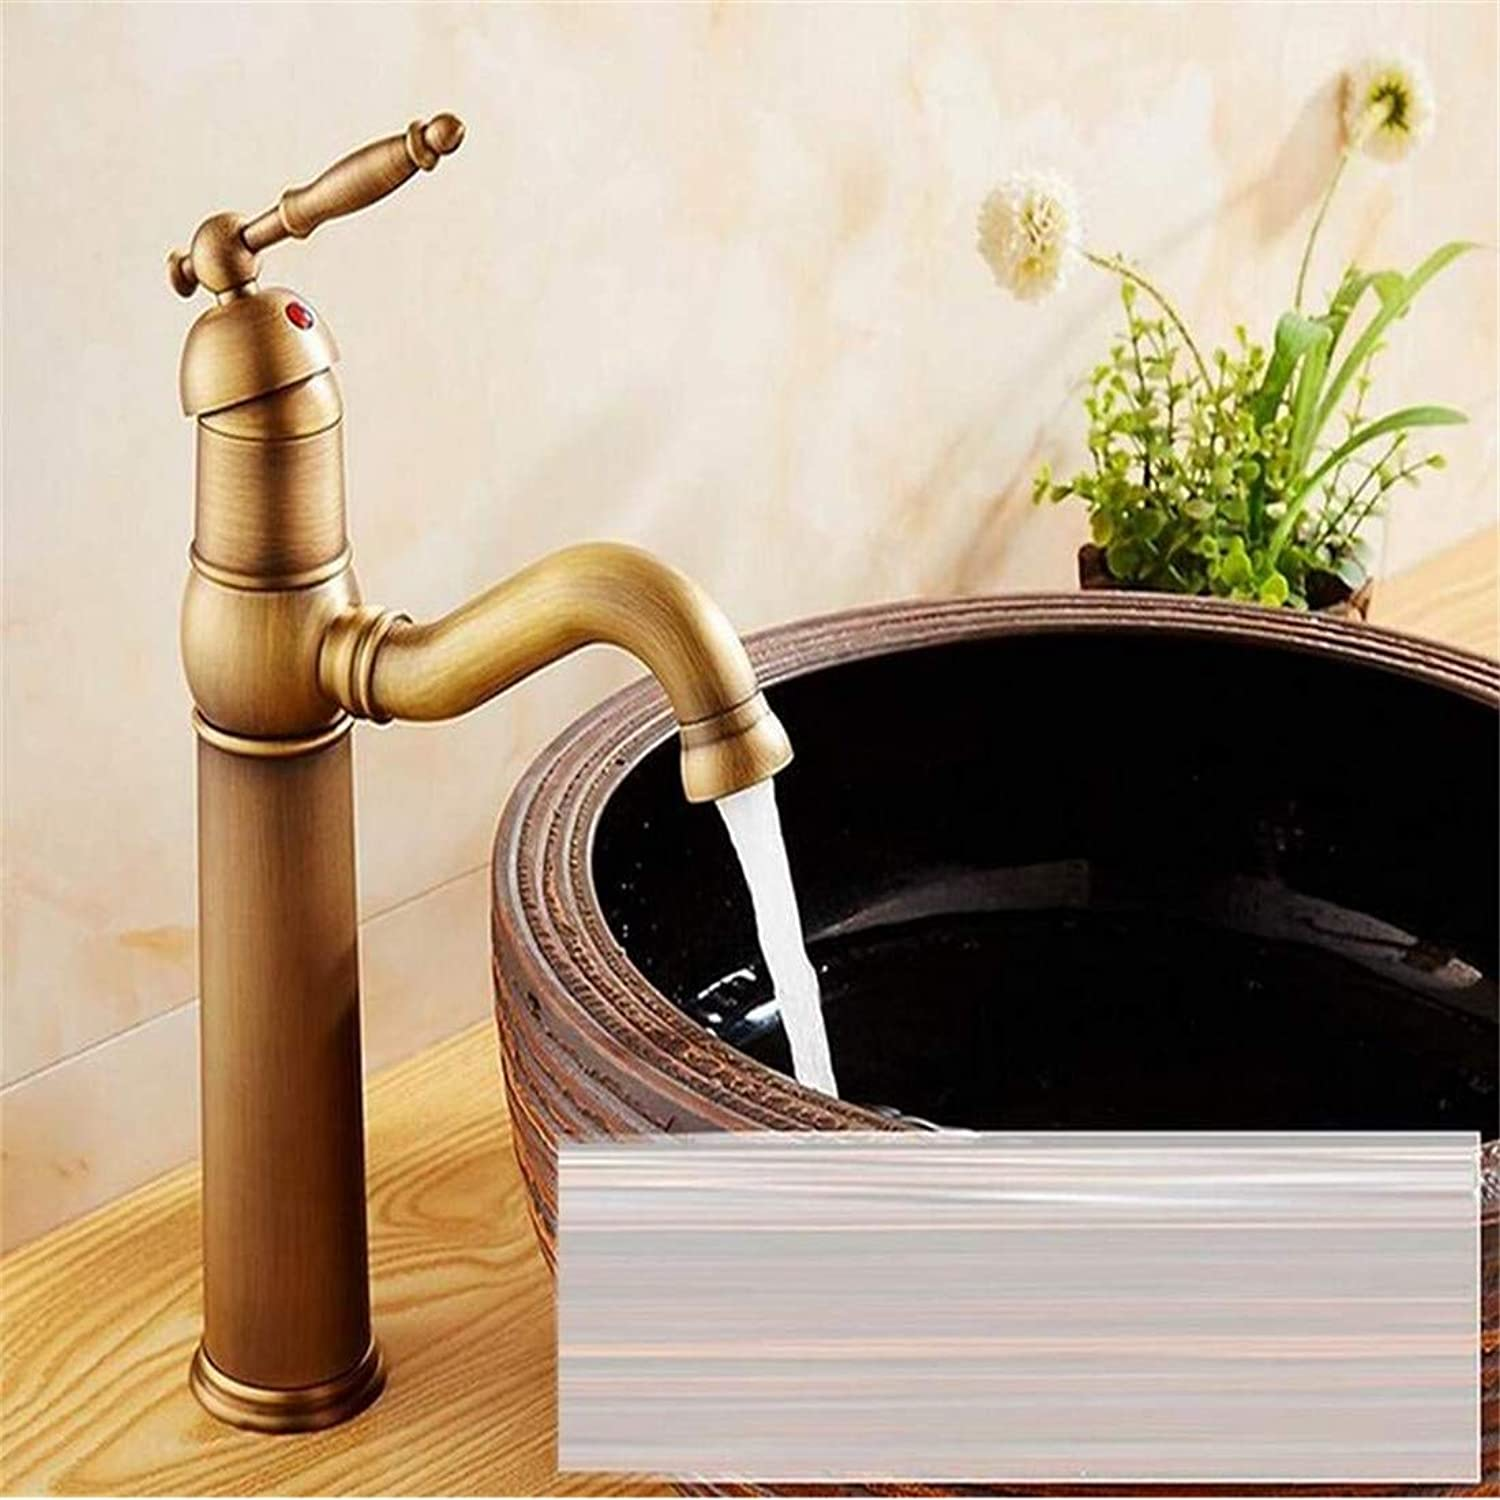 Brass Chrome Vintage Stainless Steel Bathroom Faucets Basin Sink Fashion Antique Copper Hot and Cold Faucet Single Hole Counter Basin Taps